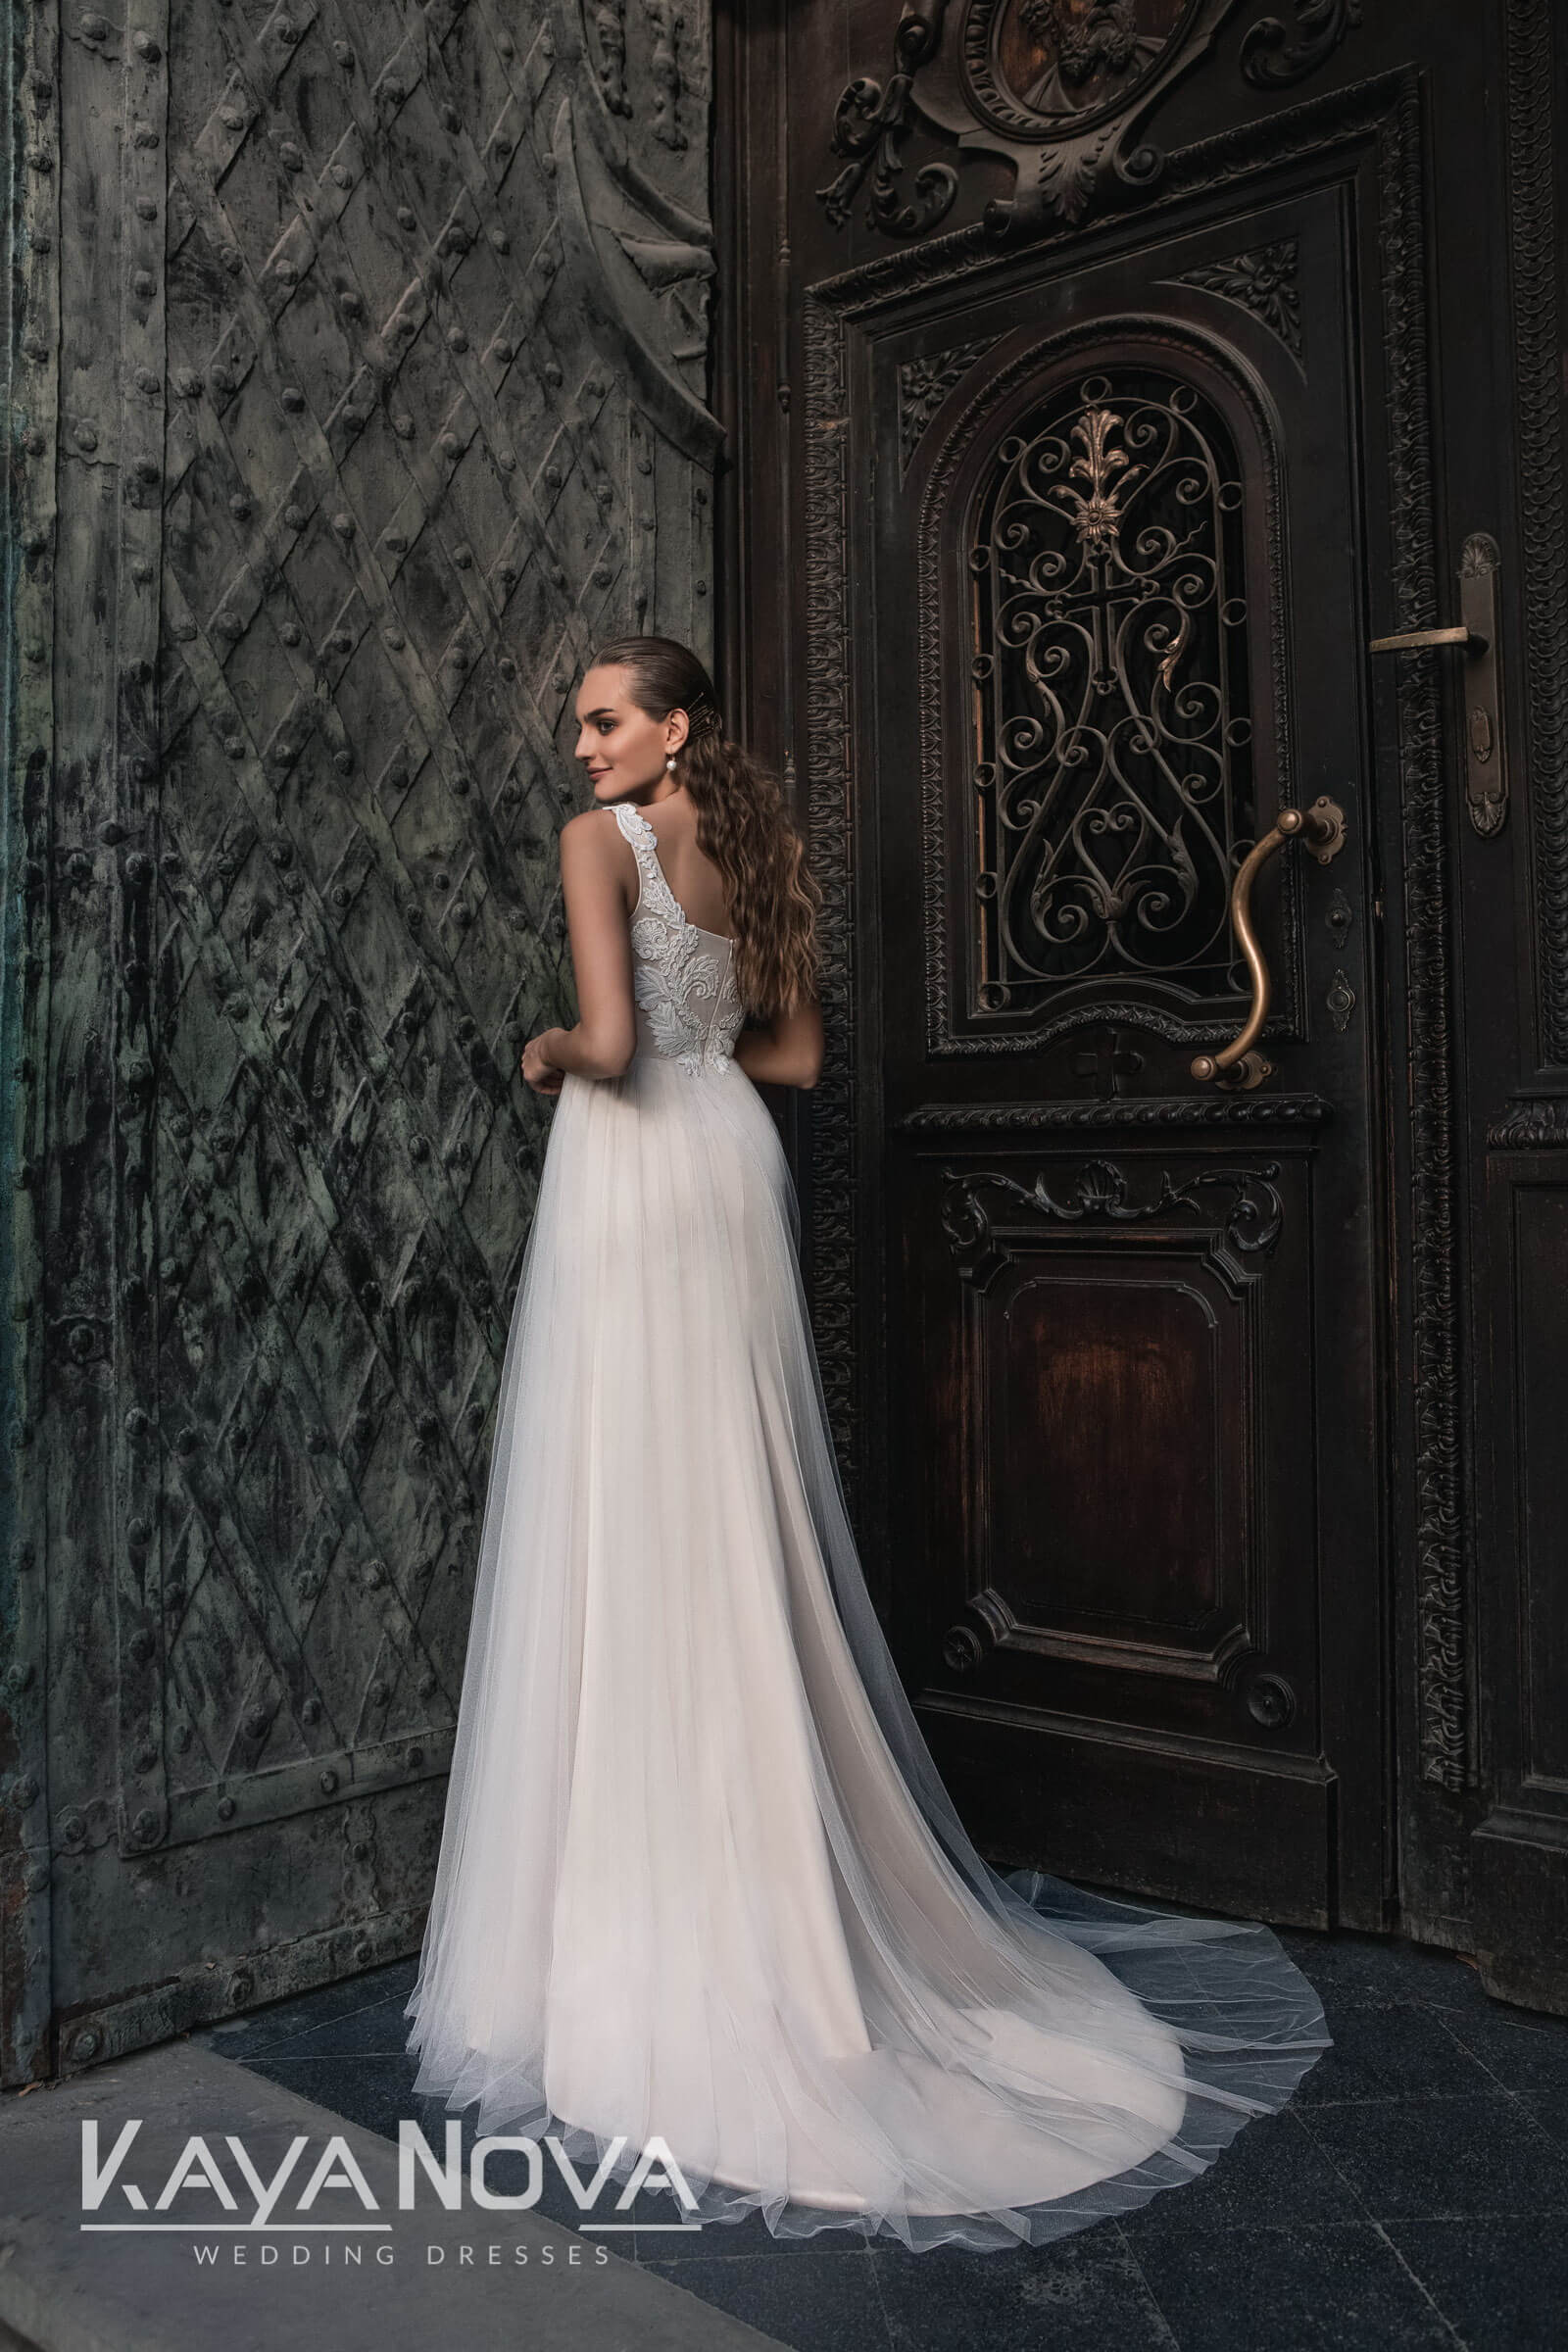 https://kayawedding.com/images/stories/virtuemart/product/Josephine 25.jpg